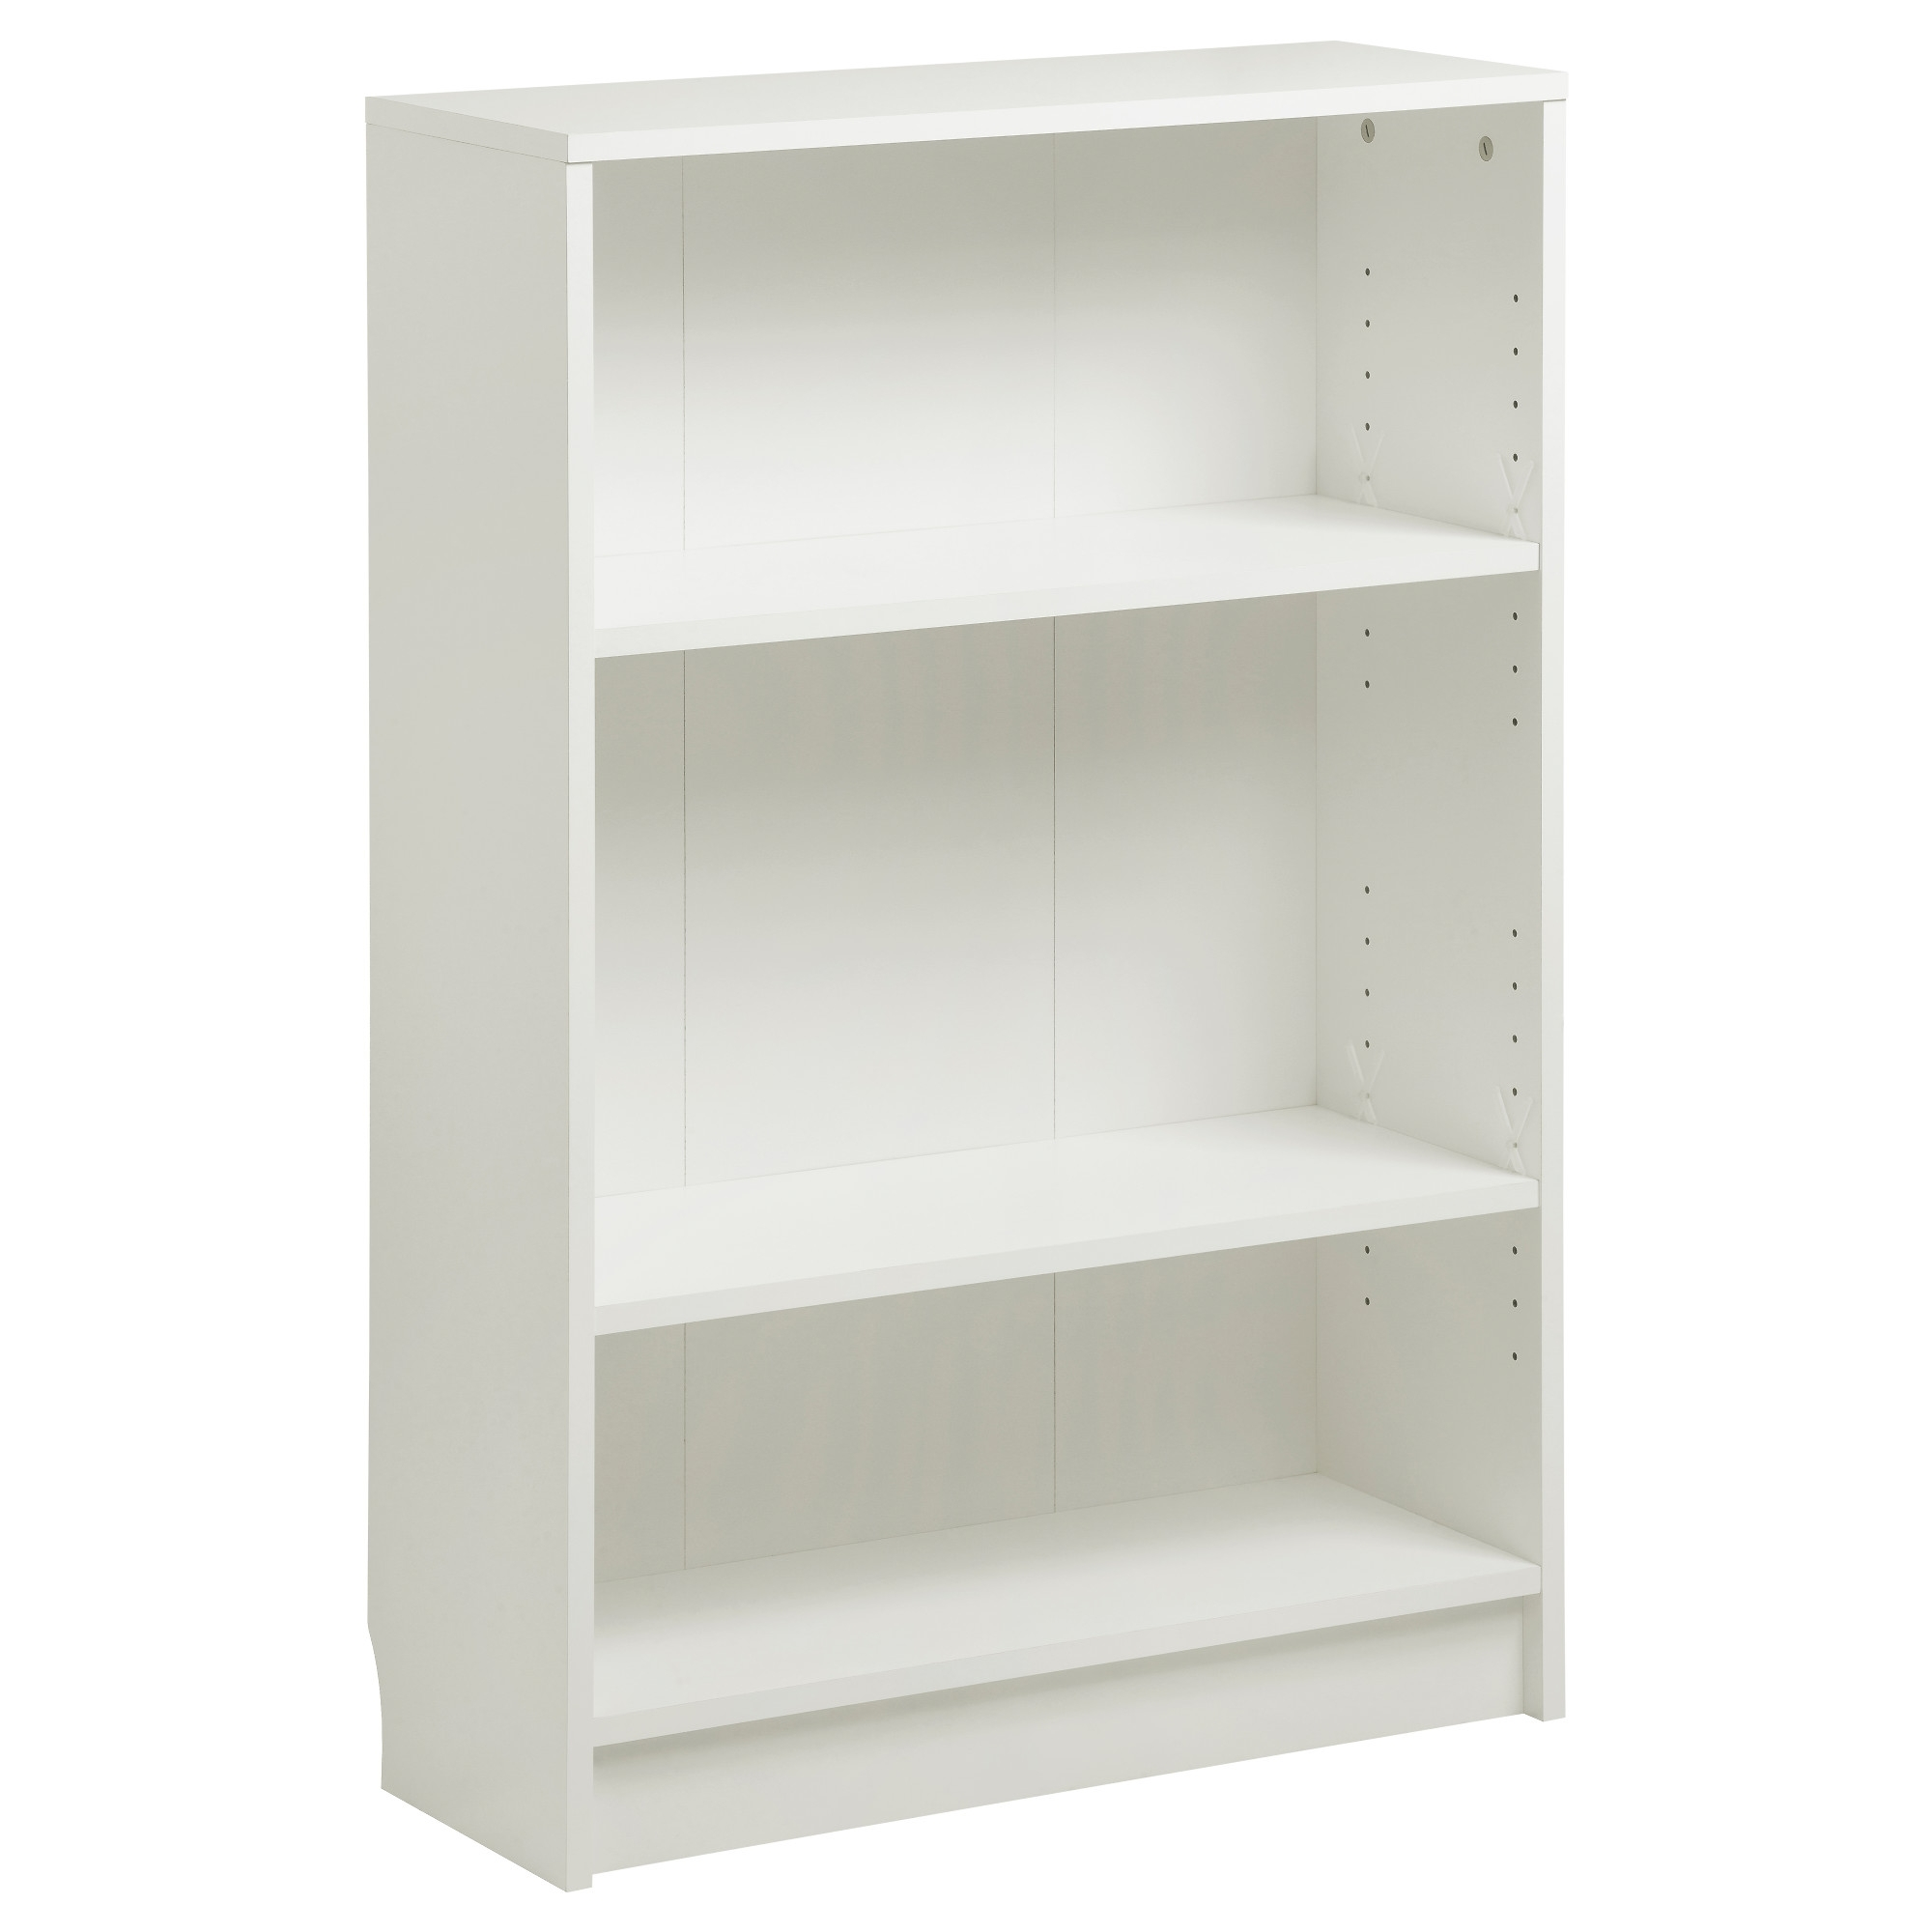 Narrow Depth Bookcase Avdala Ikea Bookcases Wood And Metal Plans Regarding Widely Used Narrow White Bookcases (View 7 of 15)